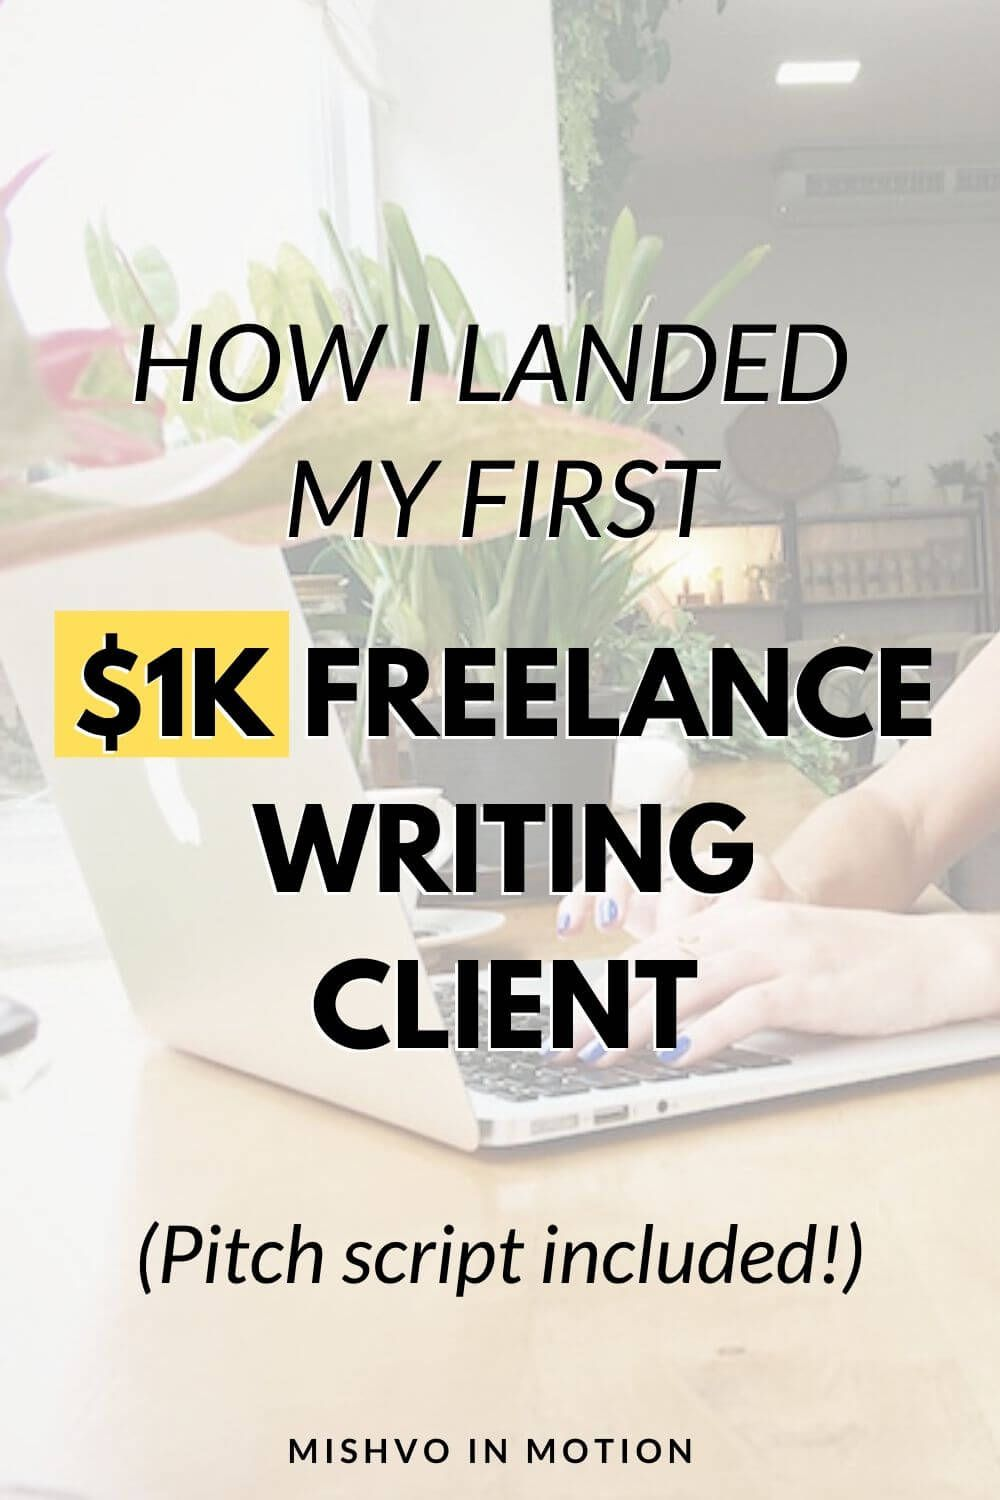 How I Got My First 1k Freelance Writing Client Pitch Script Included In 2020 Freelance Writing Online Writing Jobs Freelance Writing Jobs